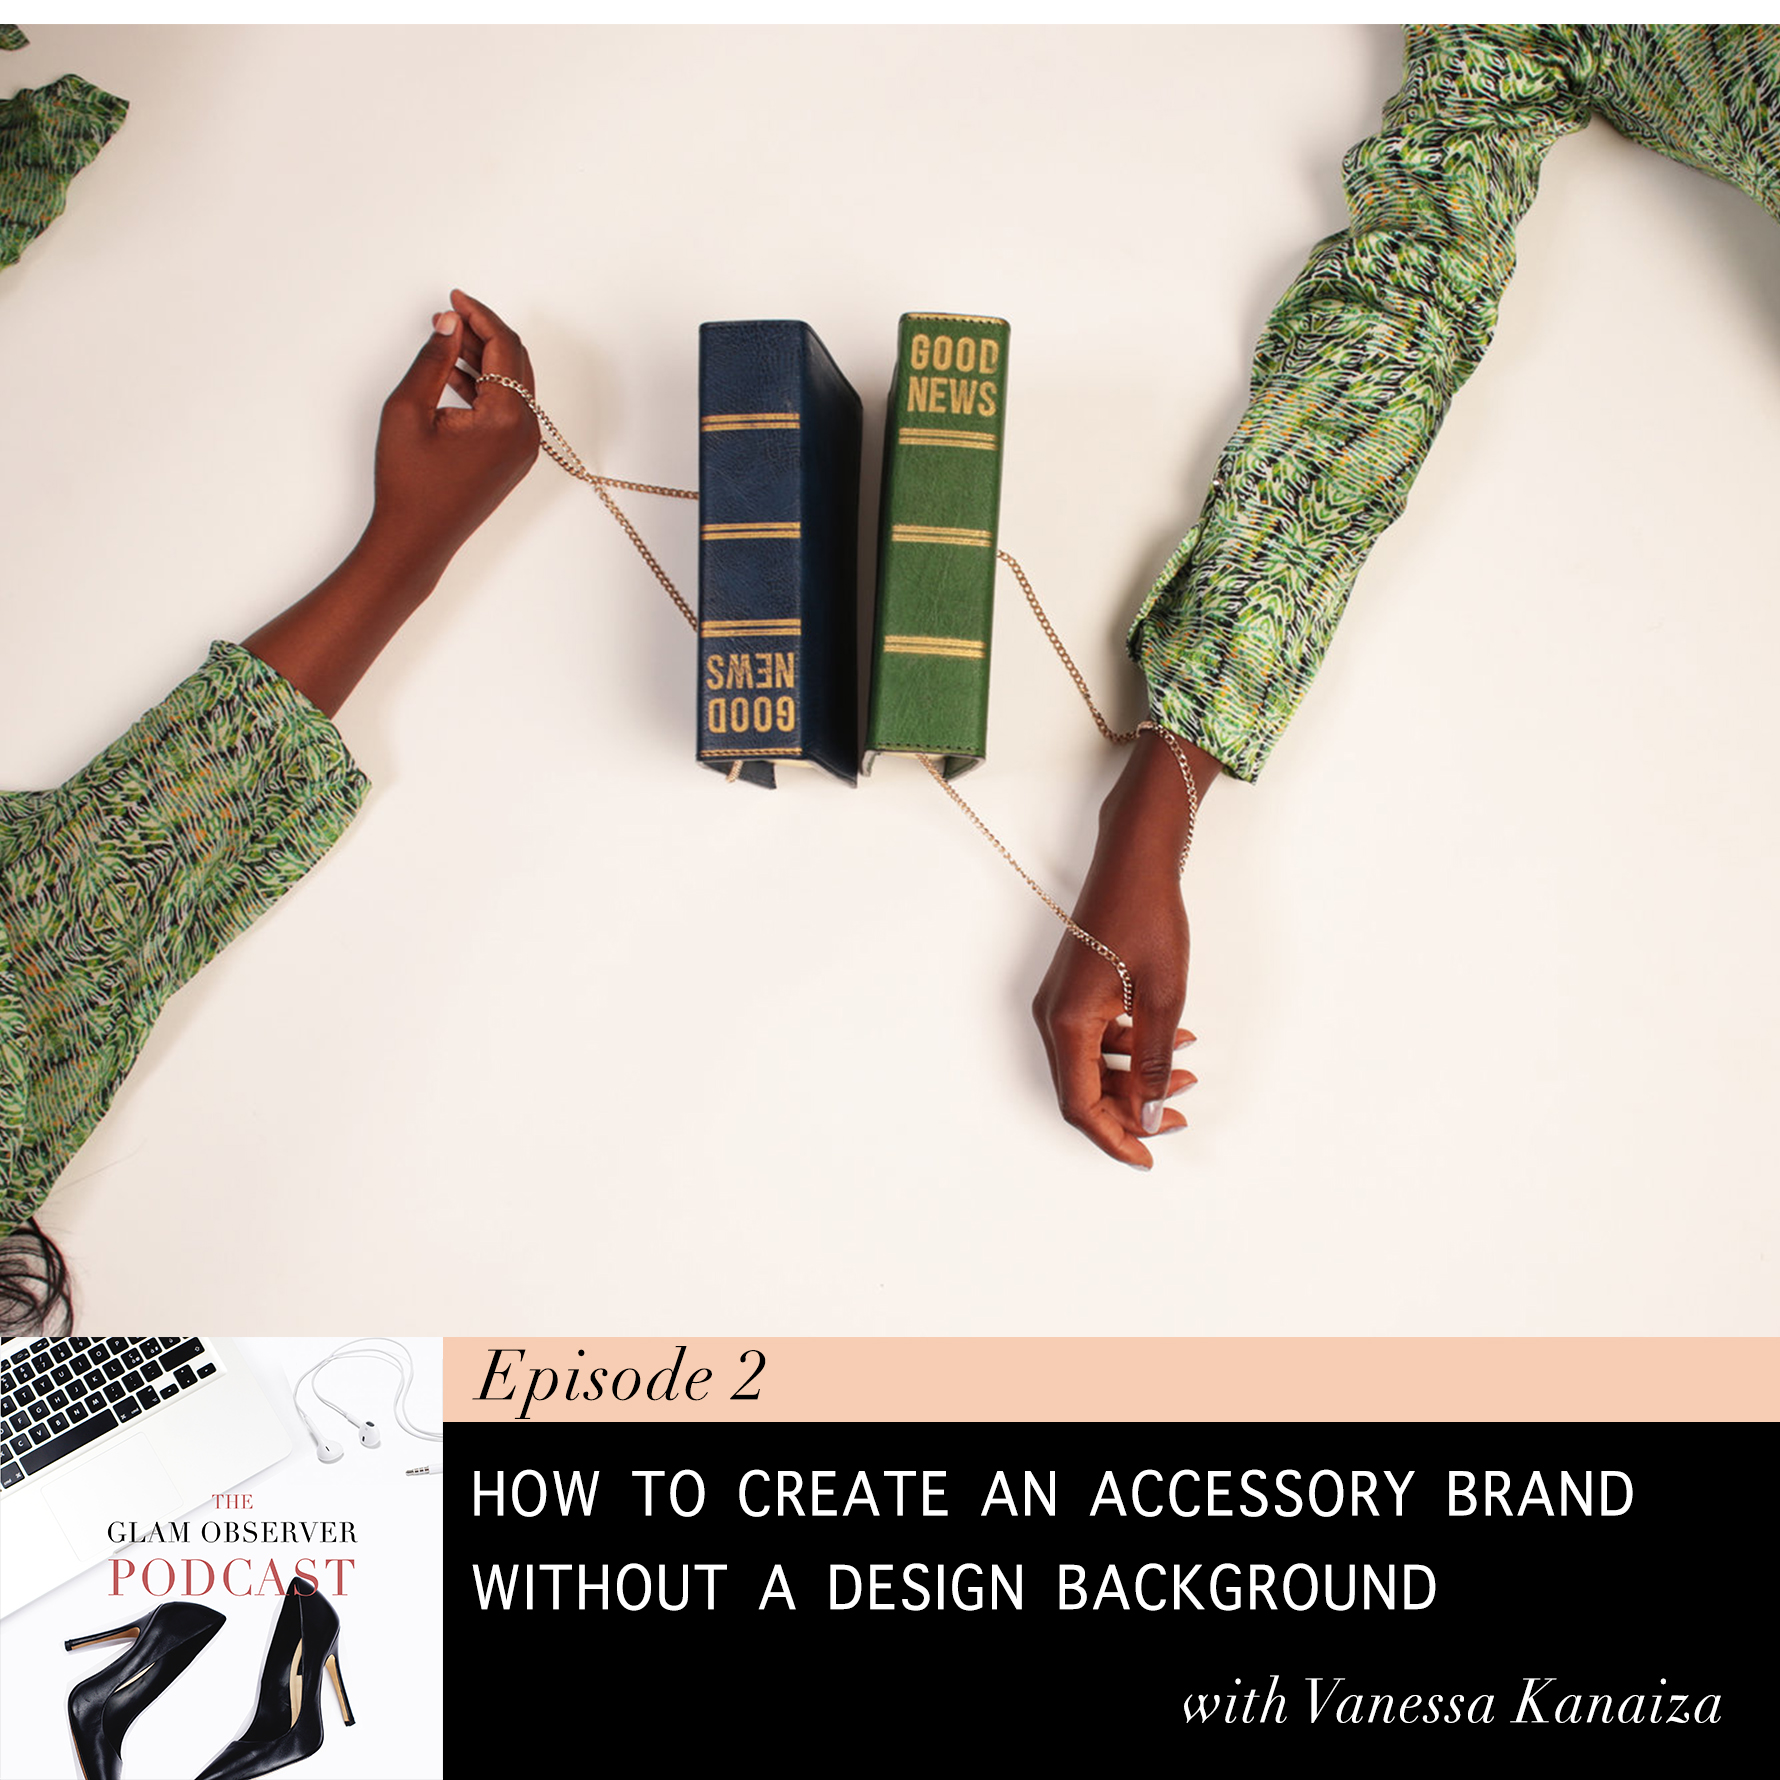 Vanessa Kanaiza: How To Create An Accessory Brand Without A Design Background